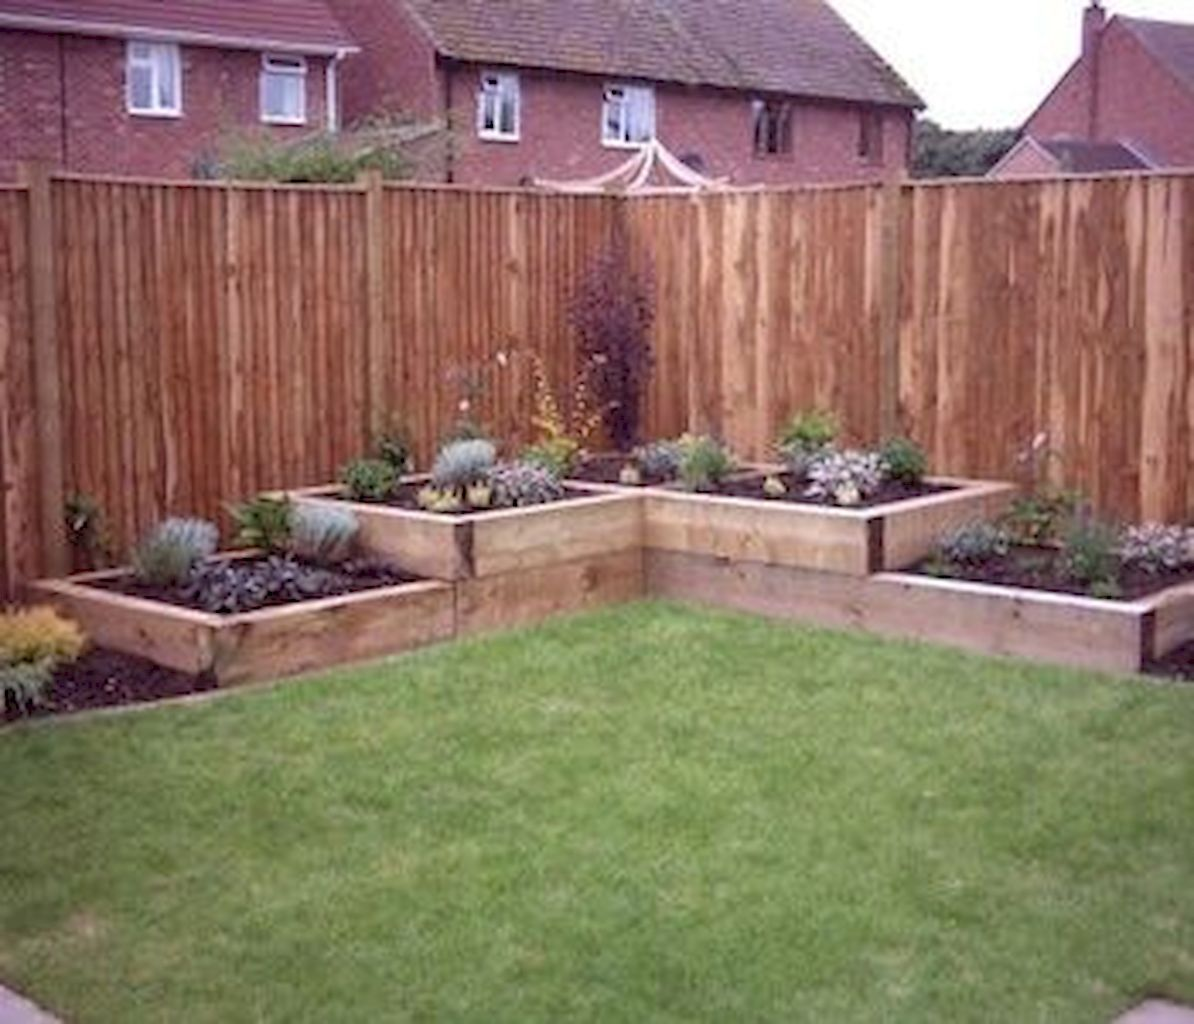 40 beautiful backyard landscaping ideas on a budget for Simple garden ideas on a budget